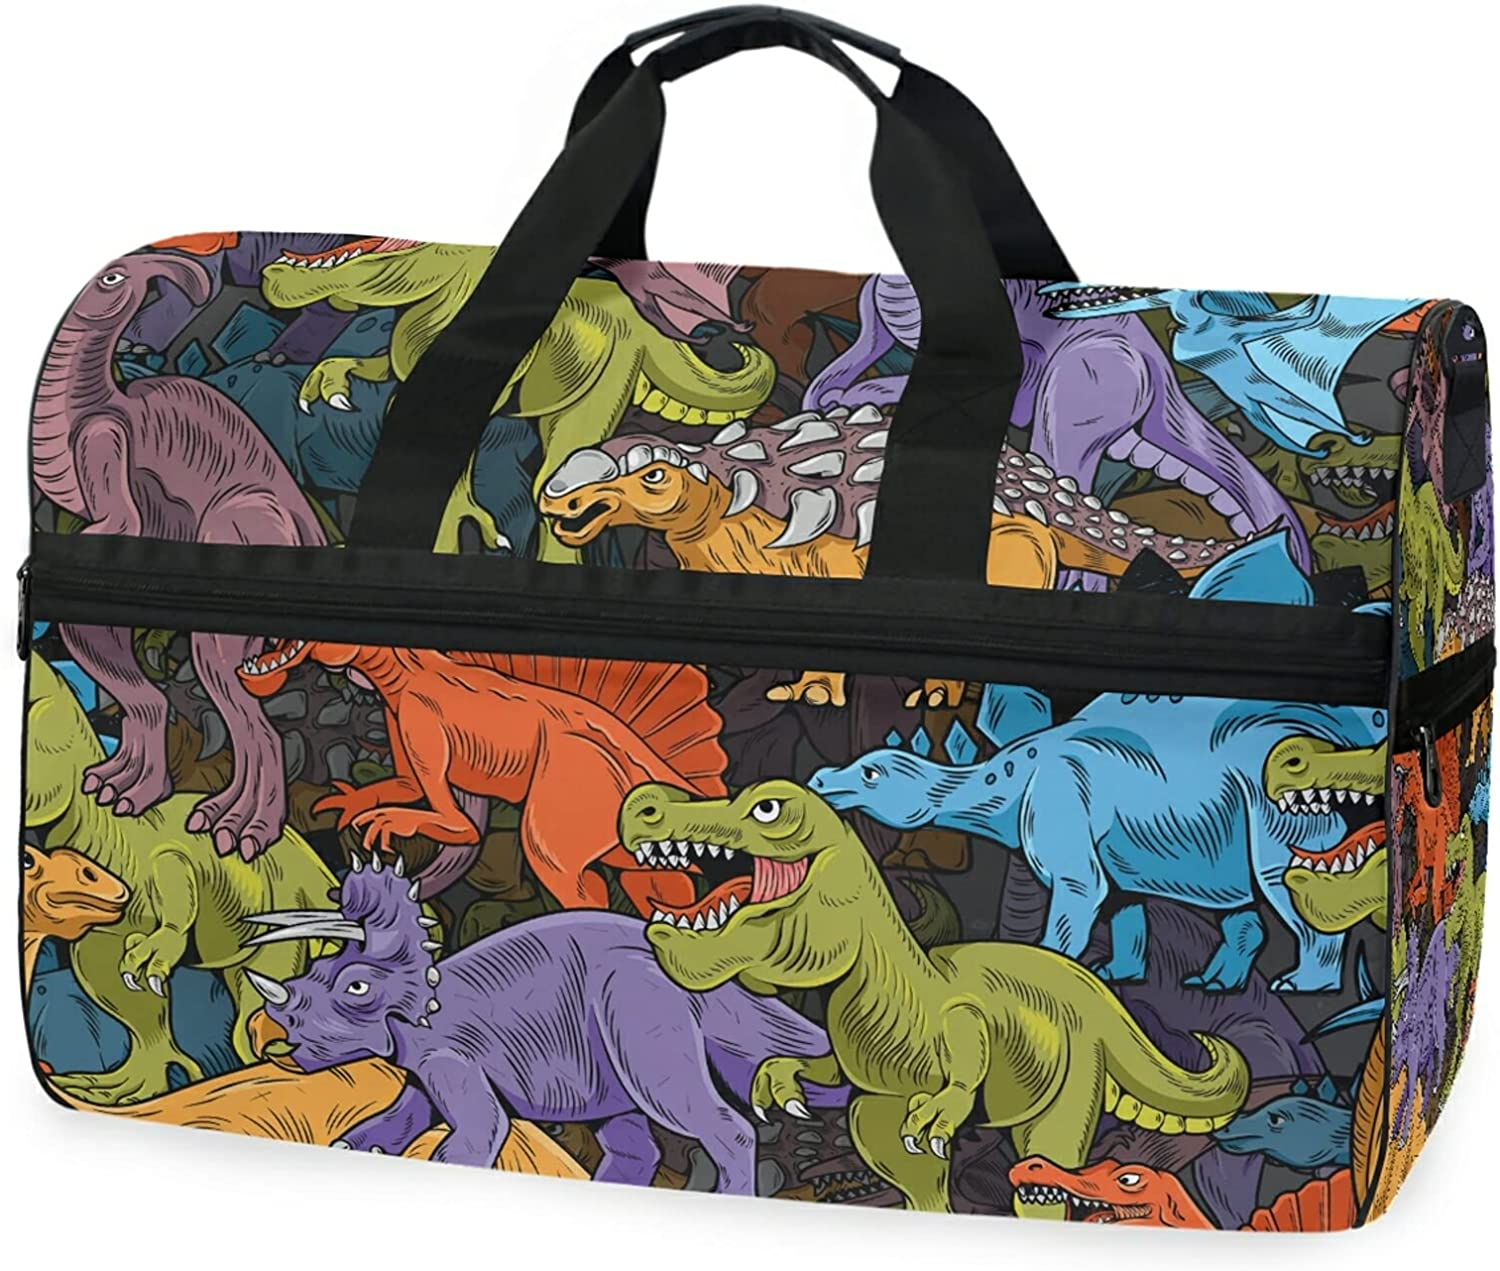 Camouflage Dinosaurs Travel Duffel Bag Gym Luggage Sports Wi Max 53% OFF Max 59% OFF